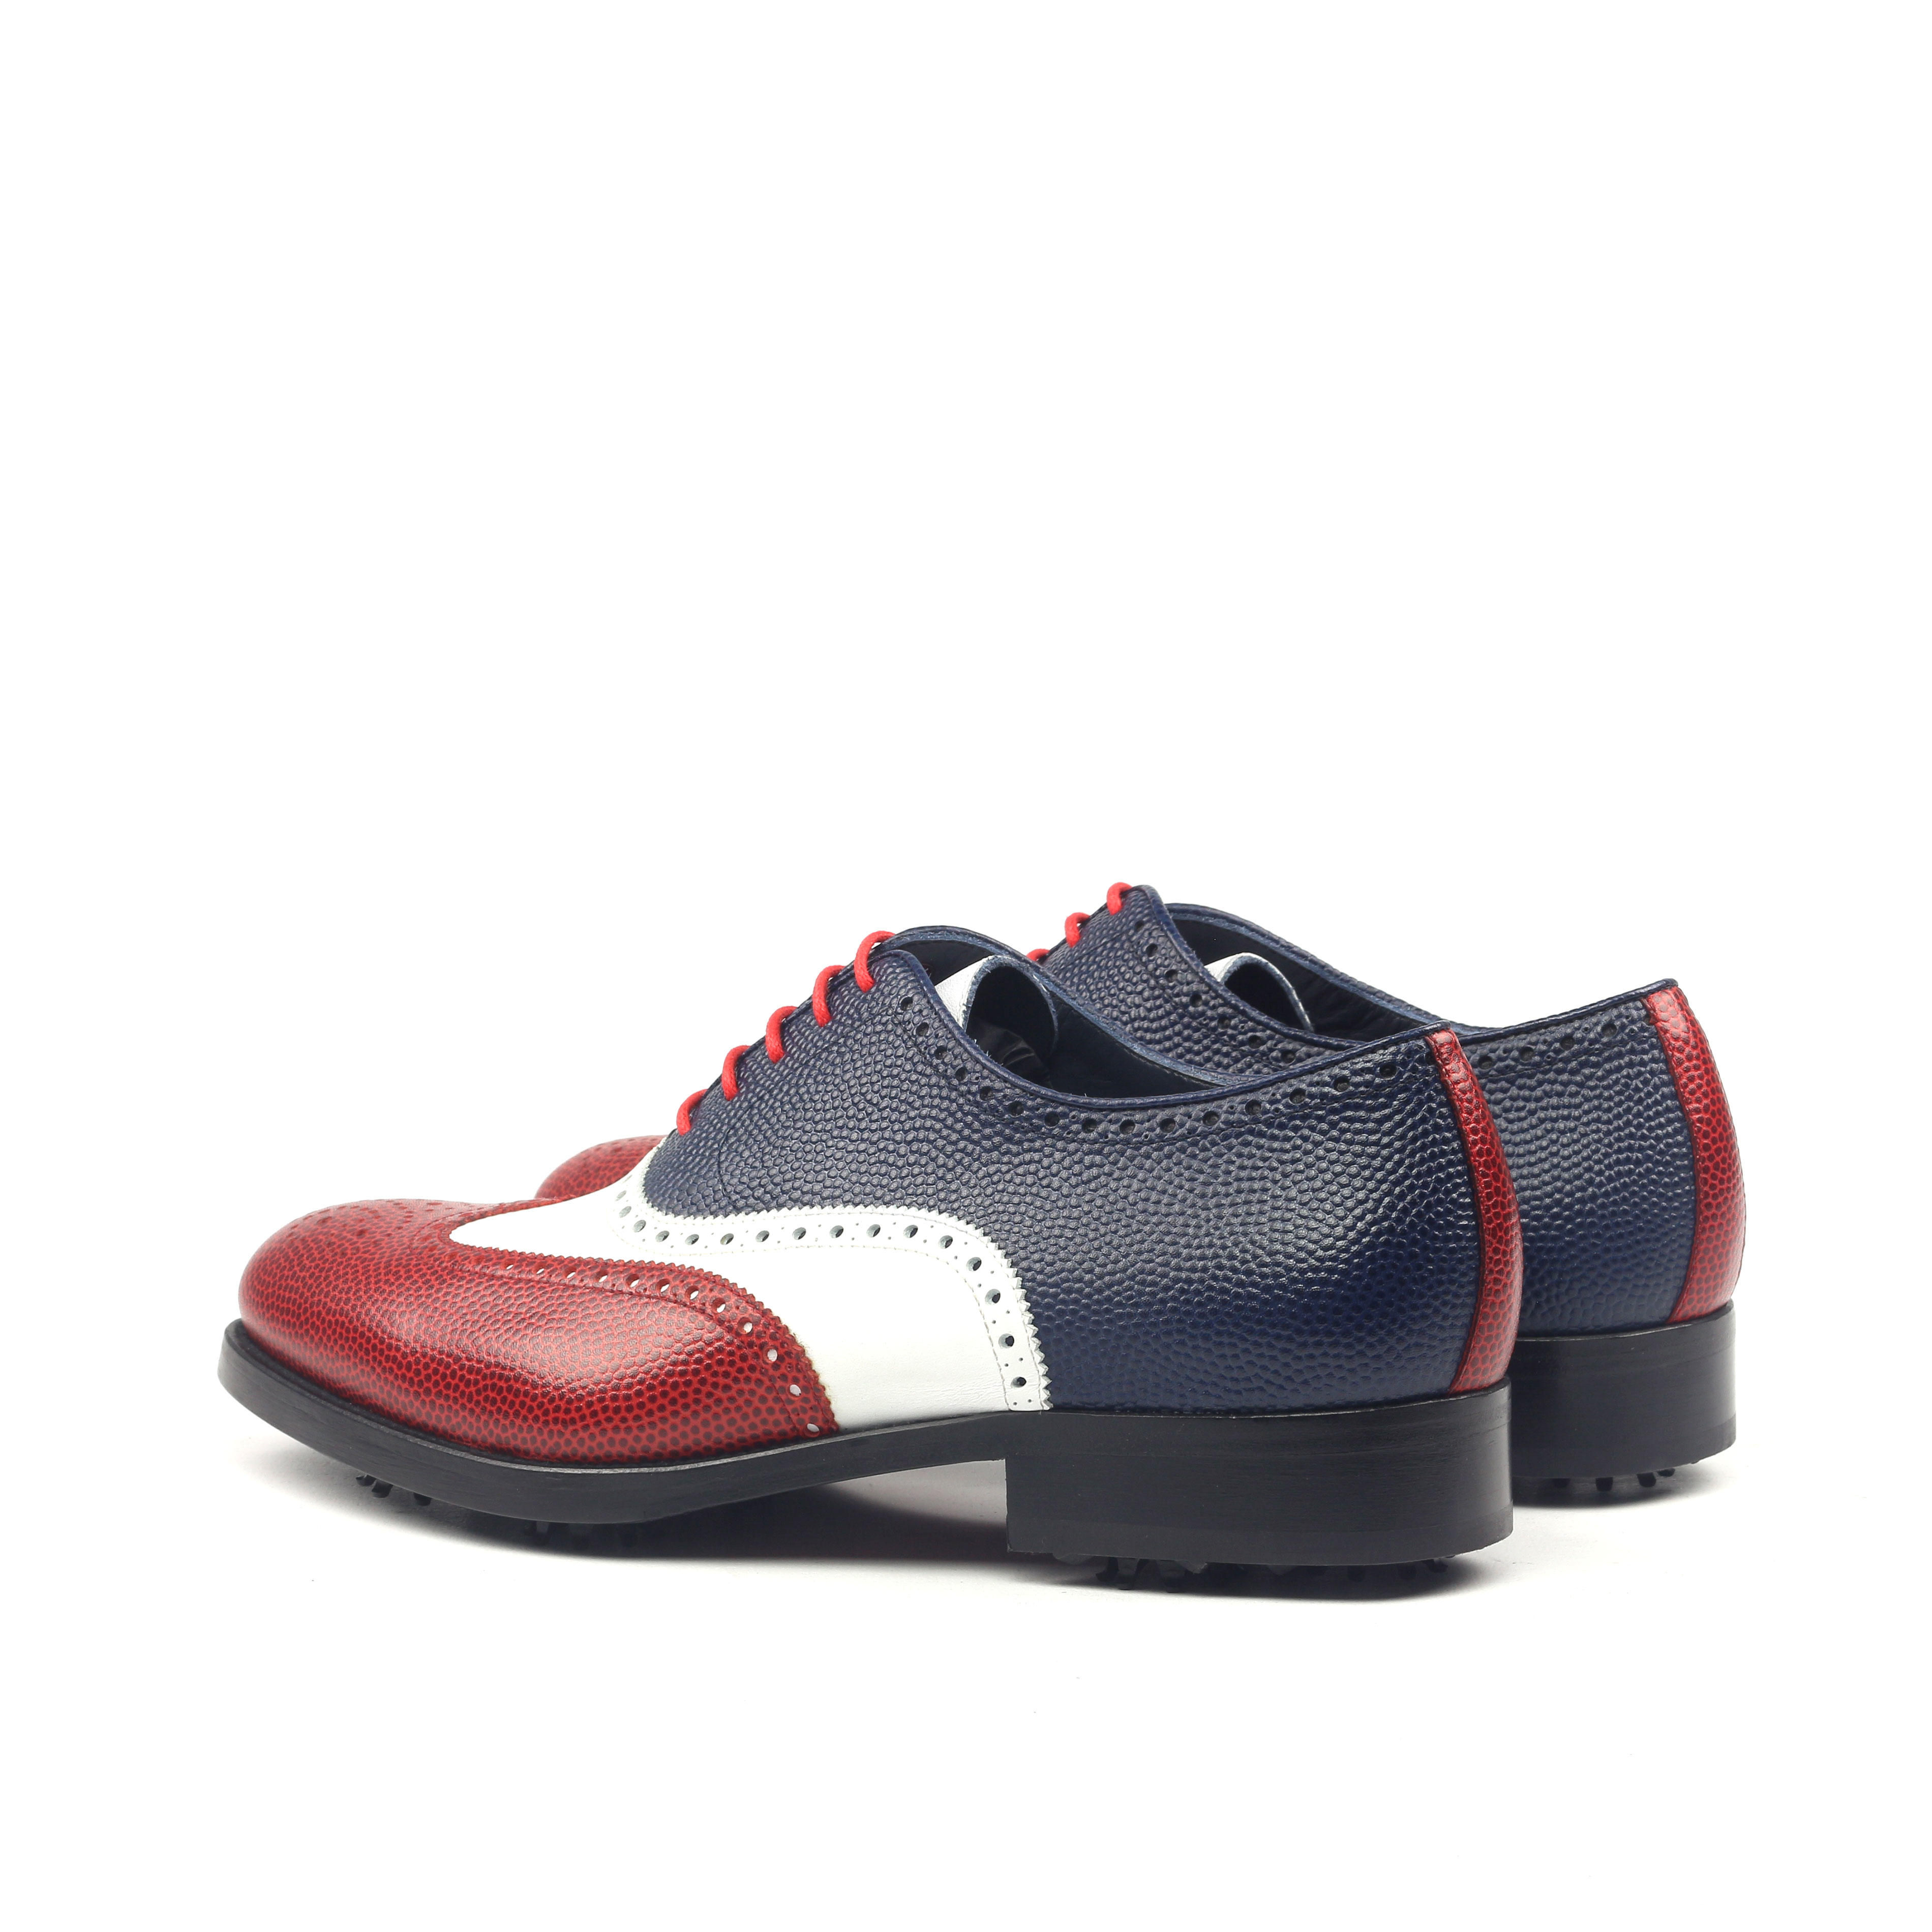 MANOR OF LONDON 'The Marylebone' Tri-Colour Pebble Grain Golfing Brogue Luxury Custom Initials Monogrammed Back Side View